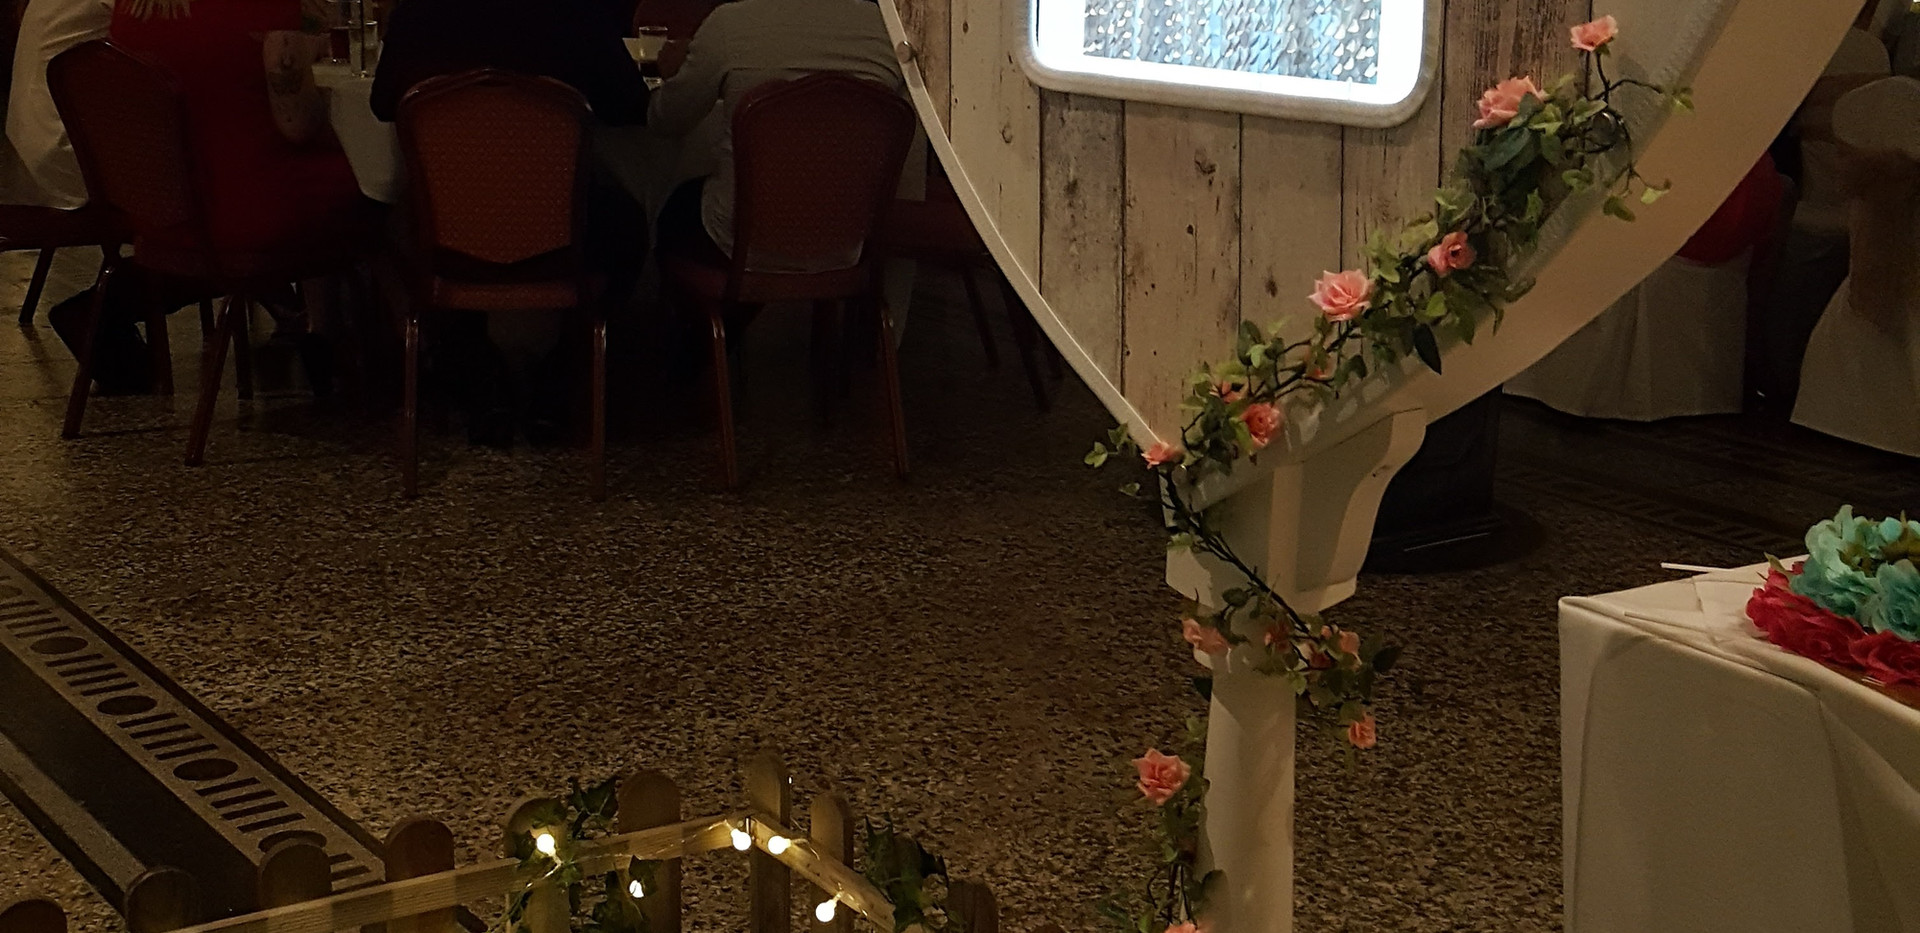 The Rustic Heart Photo Booth